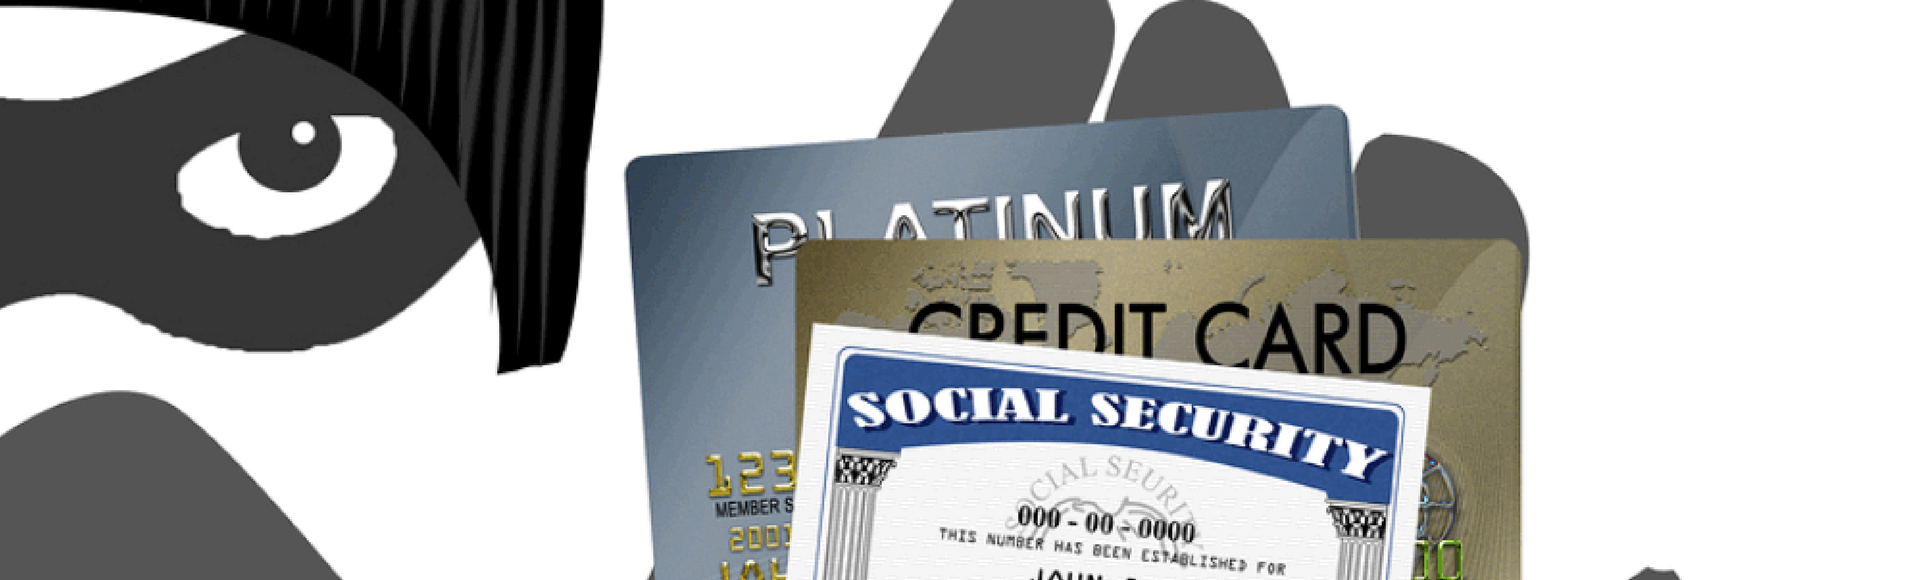 Identity theft prevention concept, mugger holds stolen social security card and credit card information stolen through tax scam.